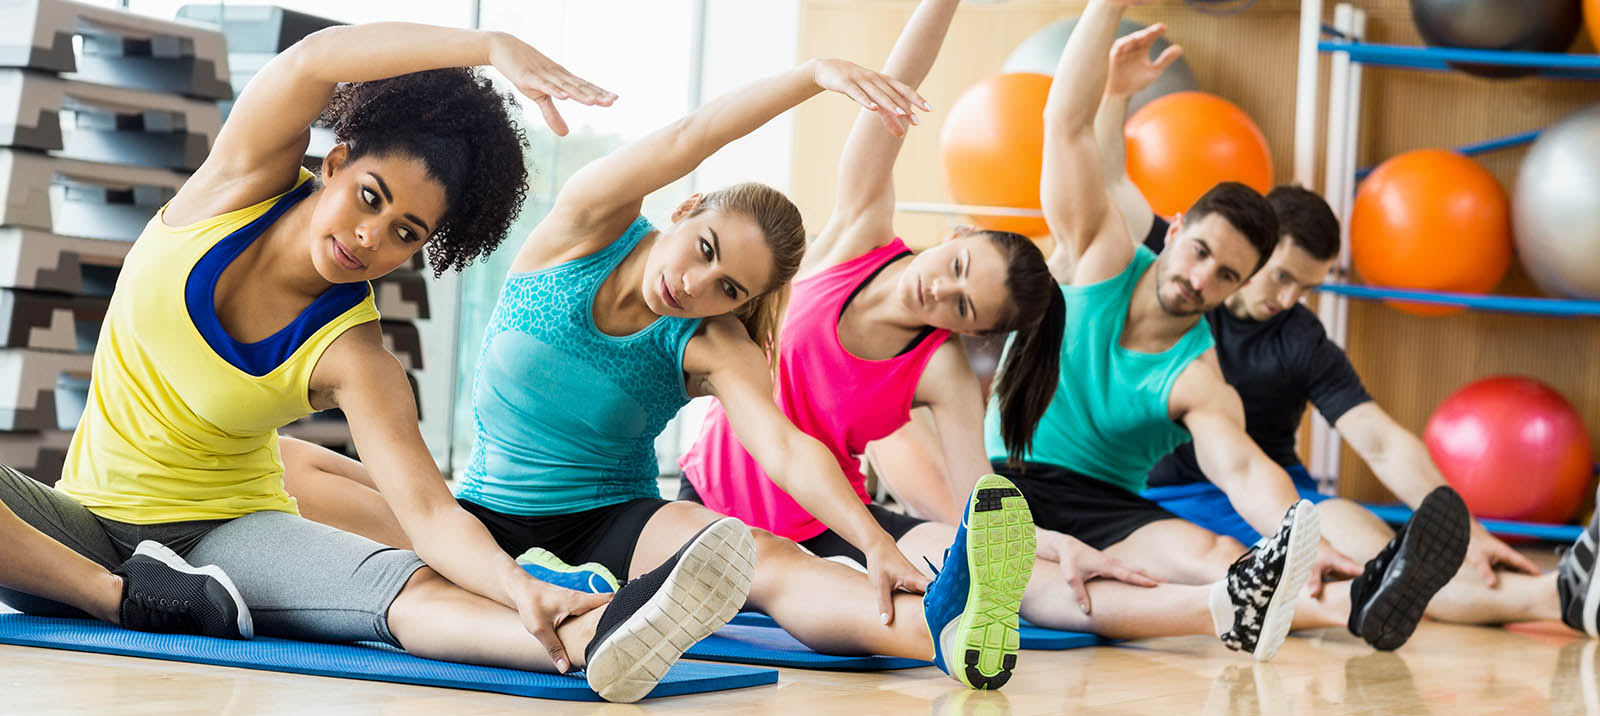 best gym group fitness class in mount dora fl